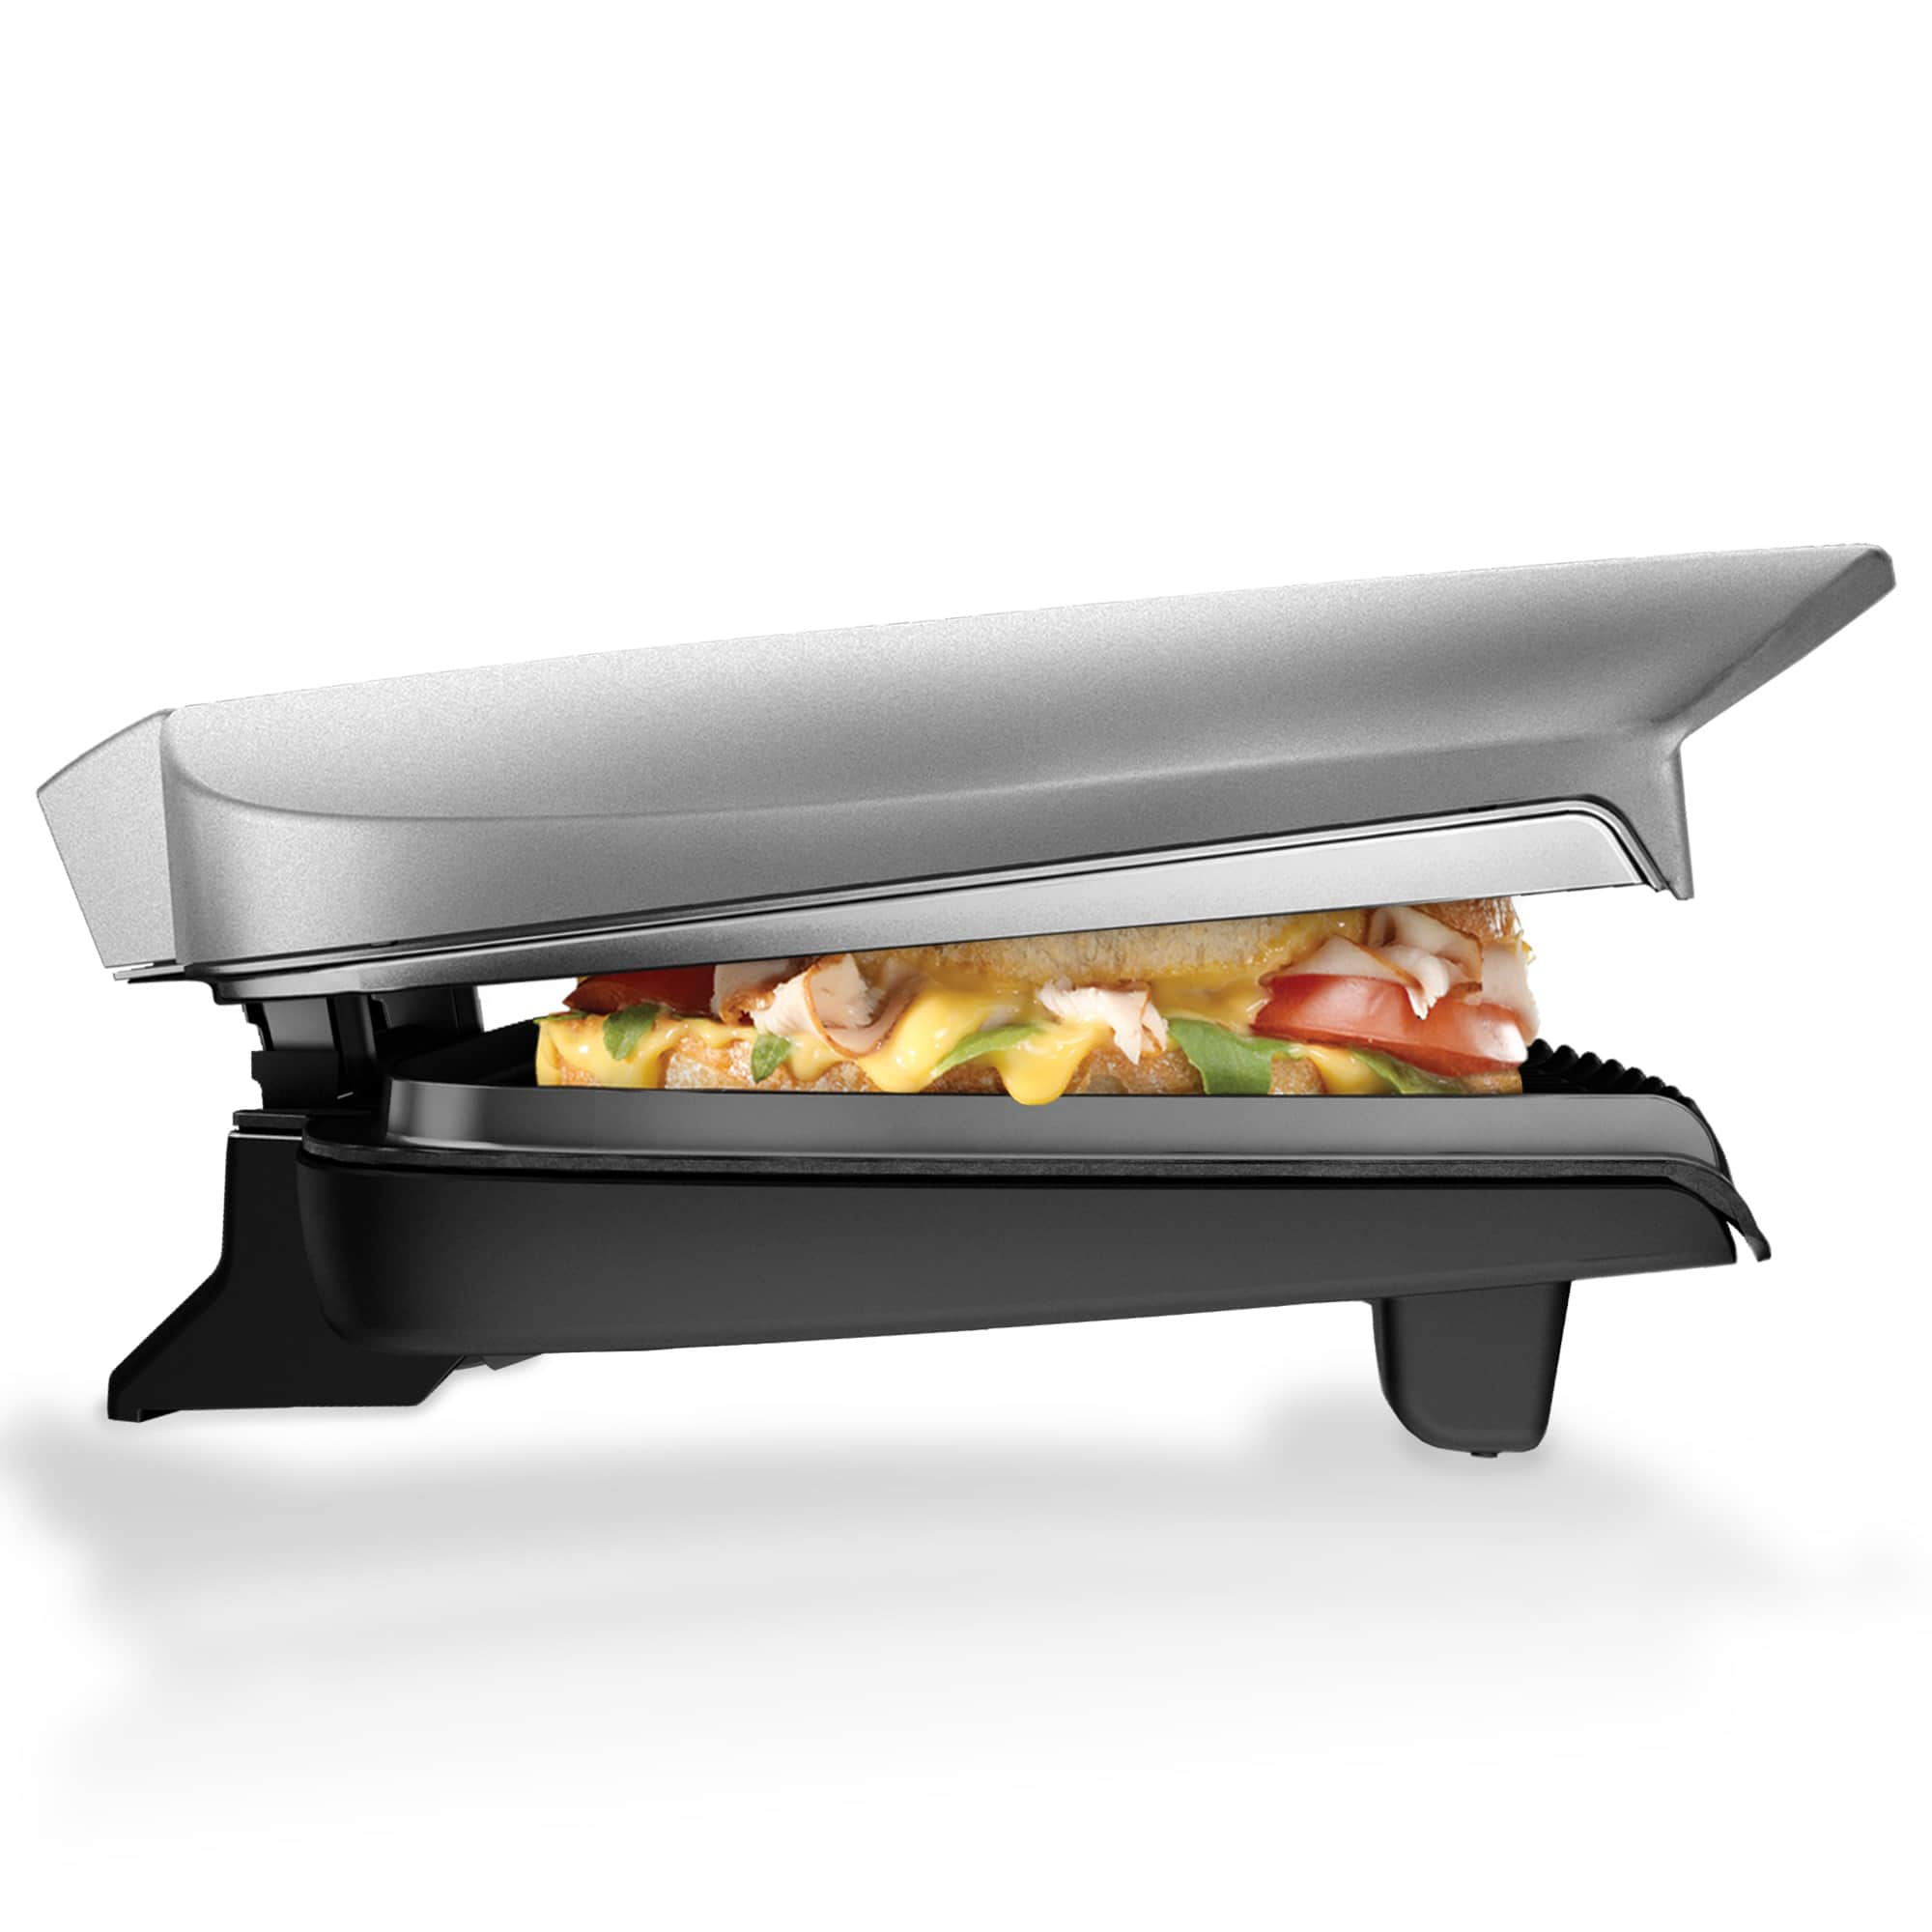 George Foreman 9-Serving Classic Plate Electric Indoor Grill and Panini Press, Platinum, GR2144P $26